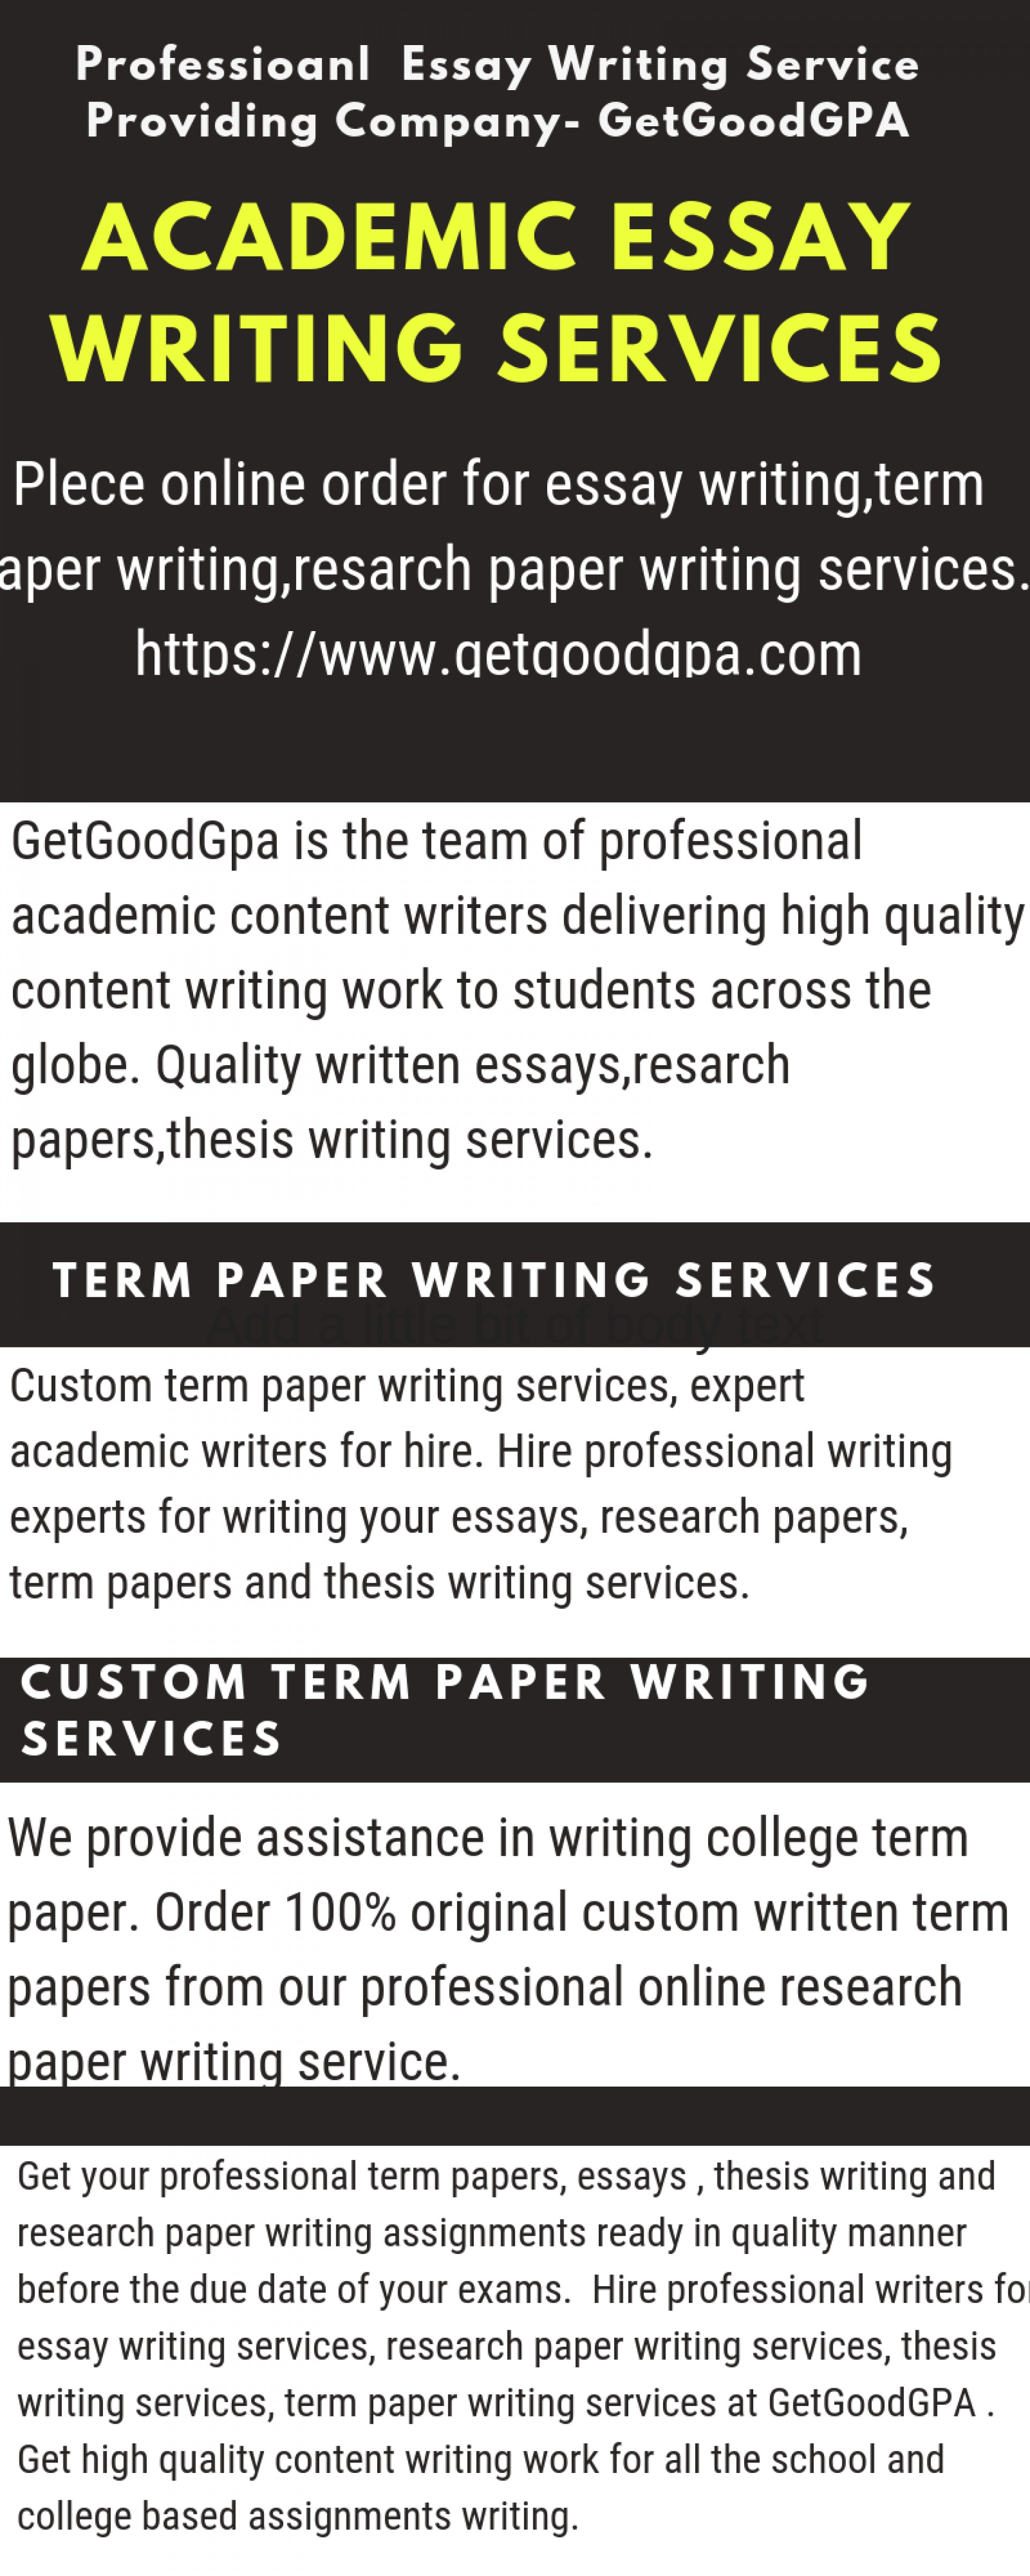 015 Research Paper Custom Striking Writers Writing Service Services Term Writer 1920